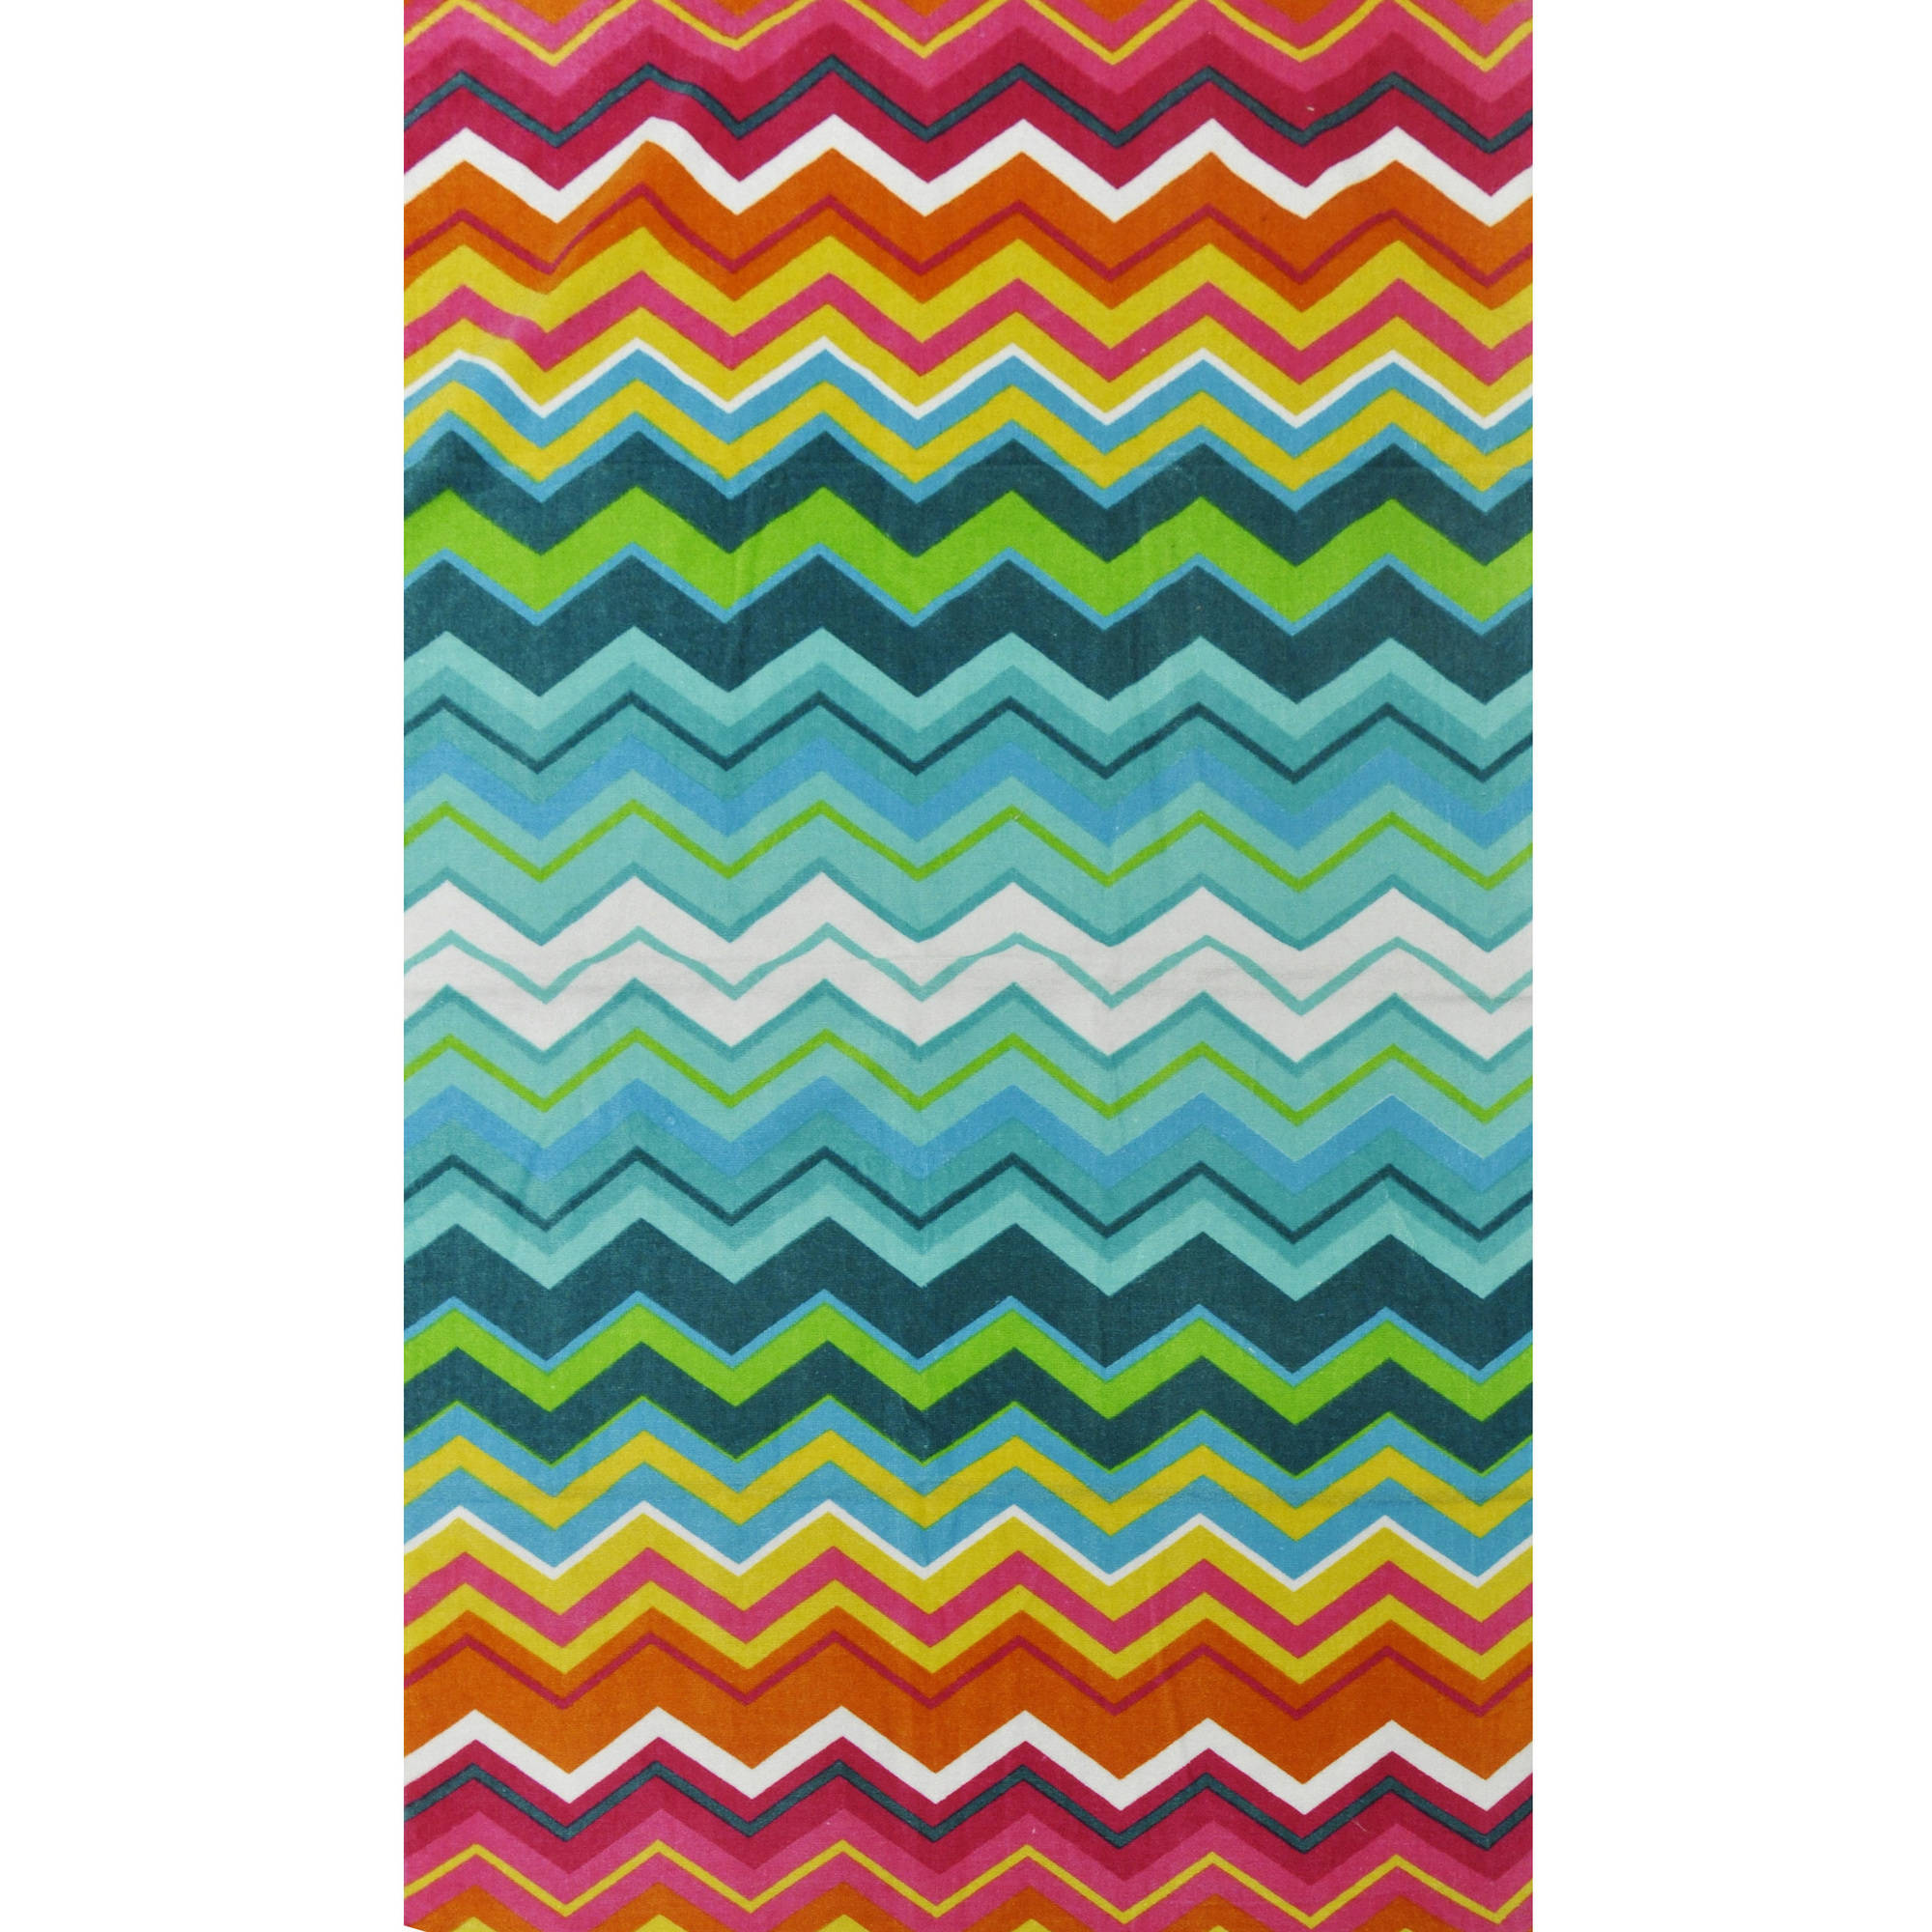 Beach House Chevron Cotton Beach Towel